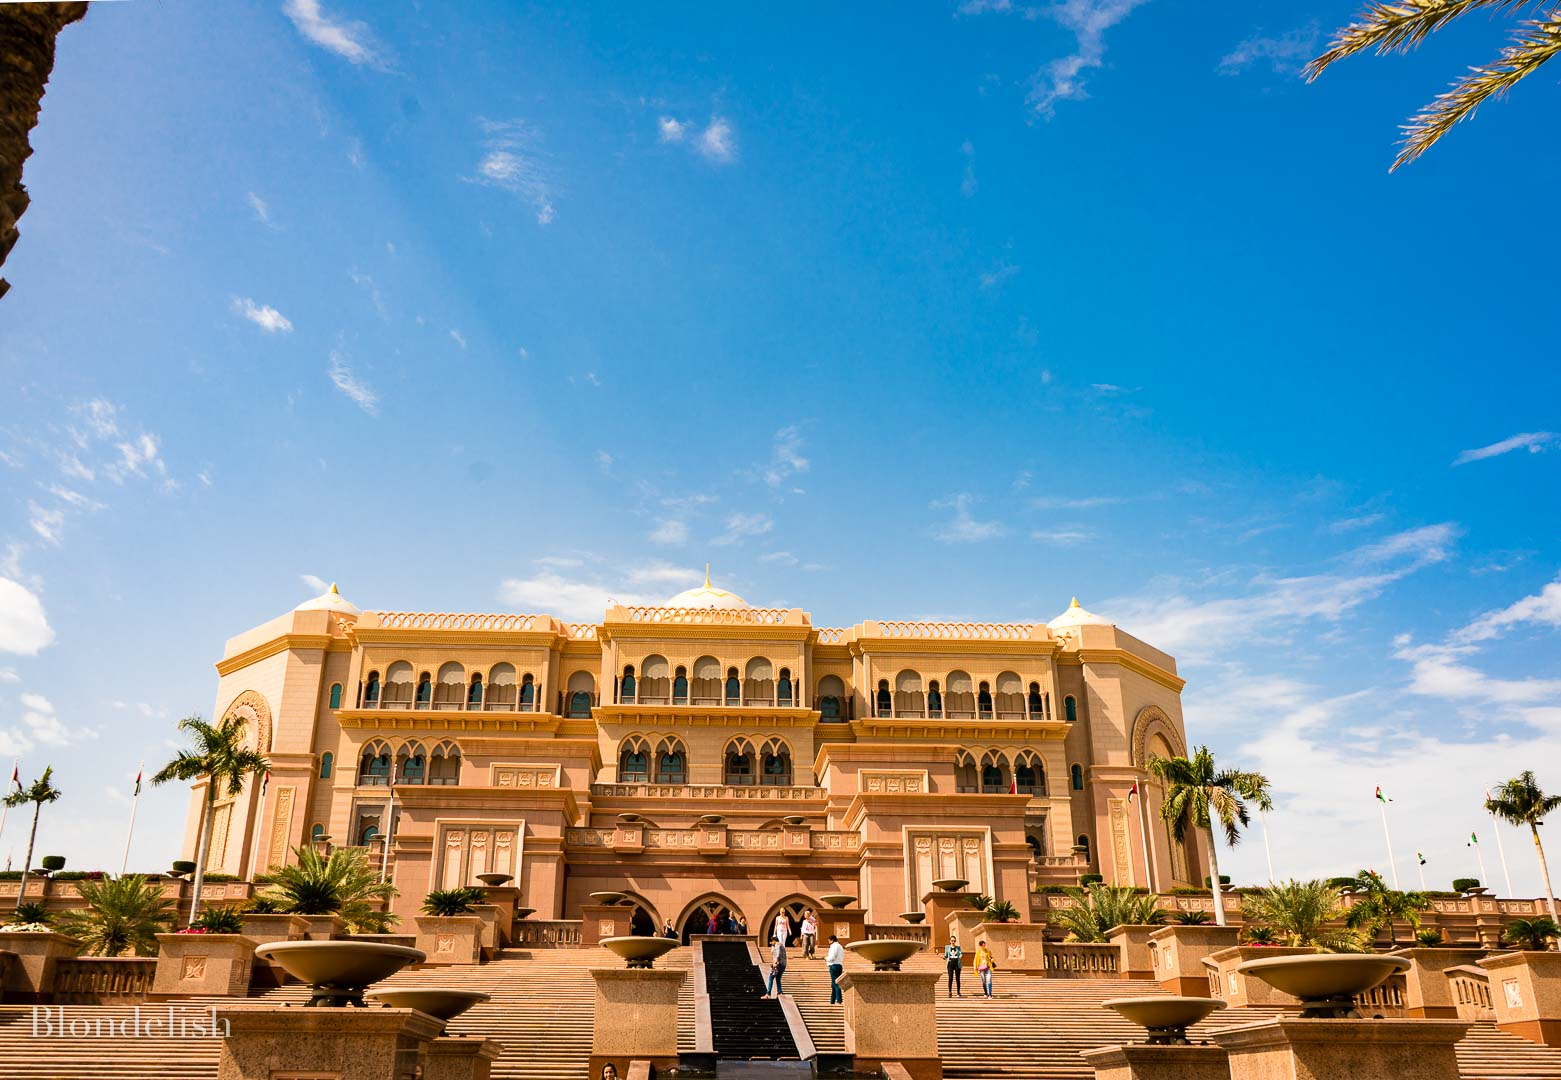 Emirates Palace Abu Dhabi - Best Places to Visit in Dubai - Things to do in Dubai